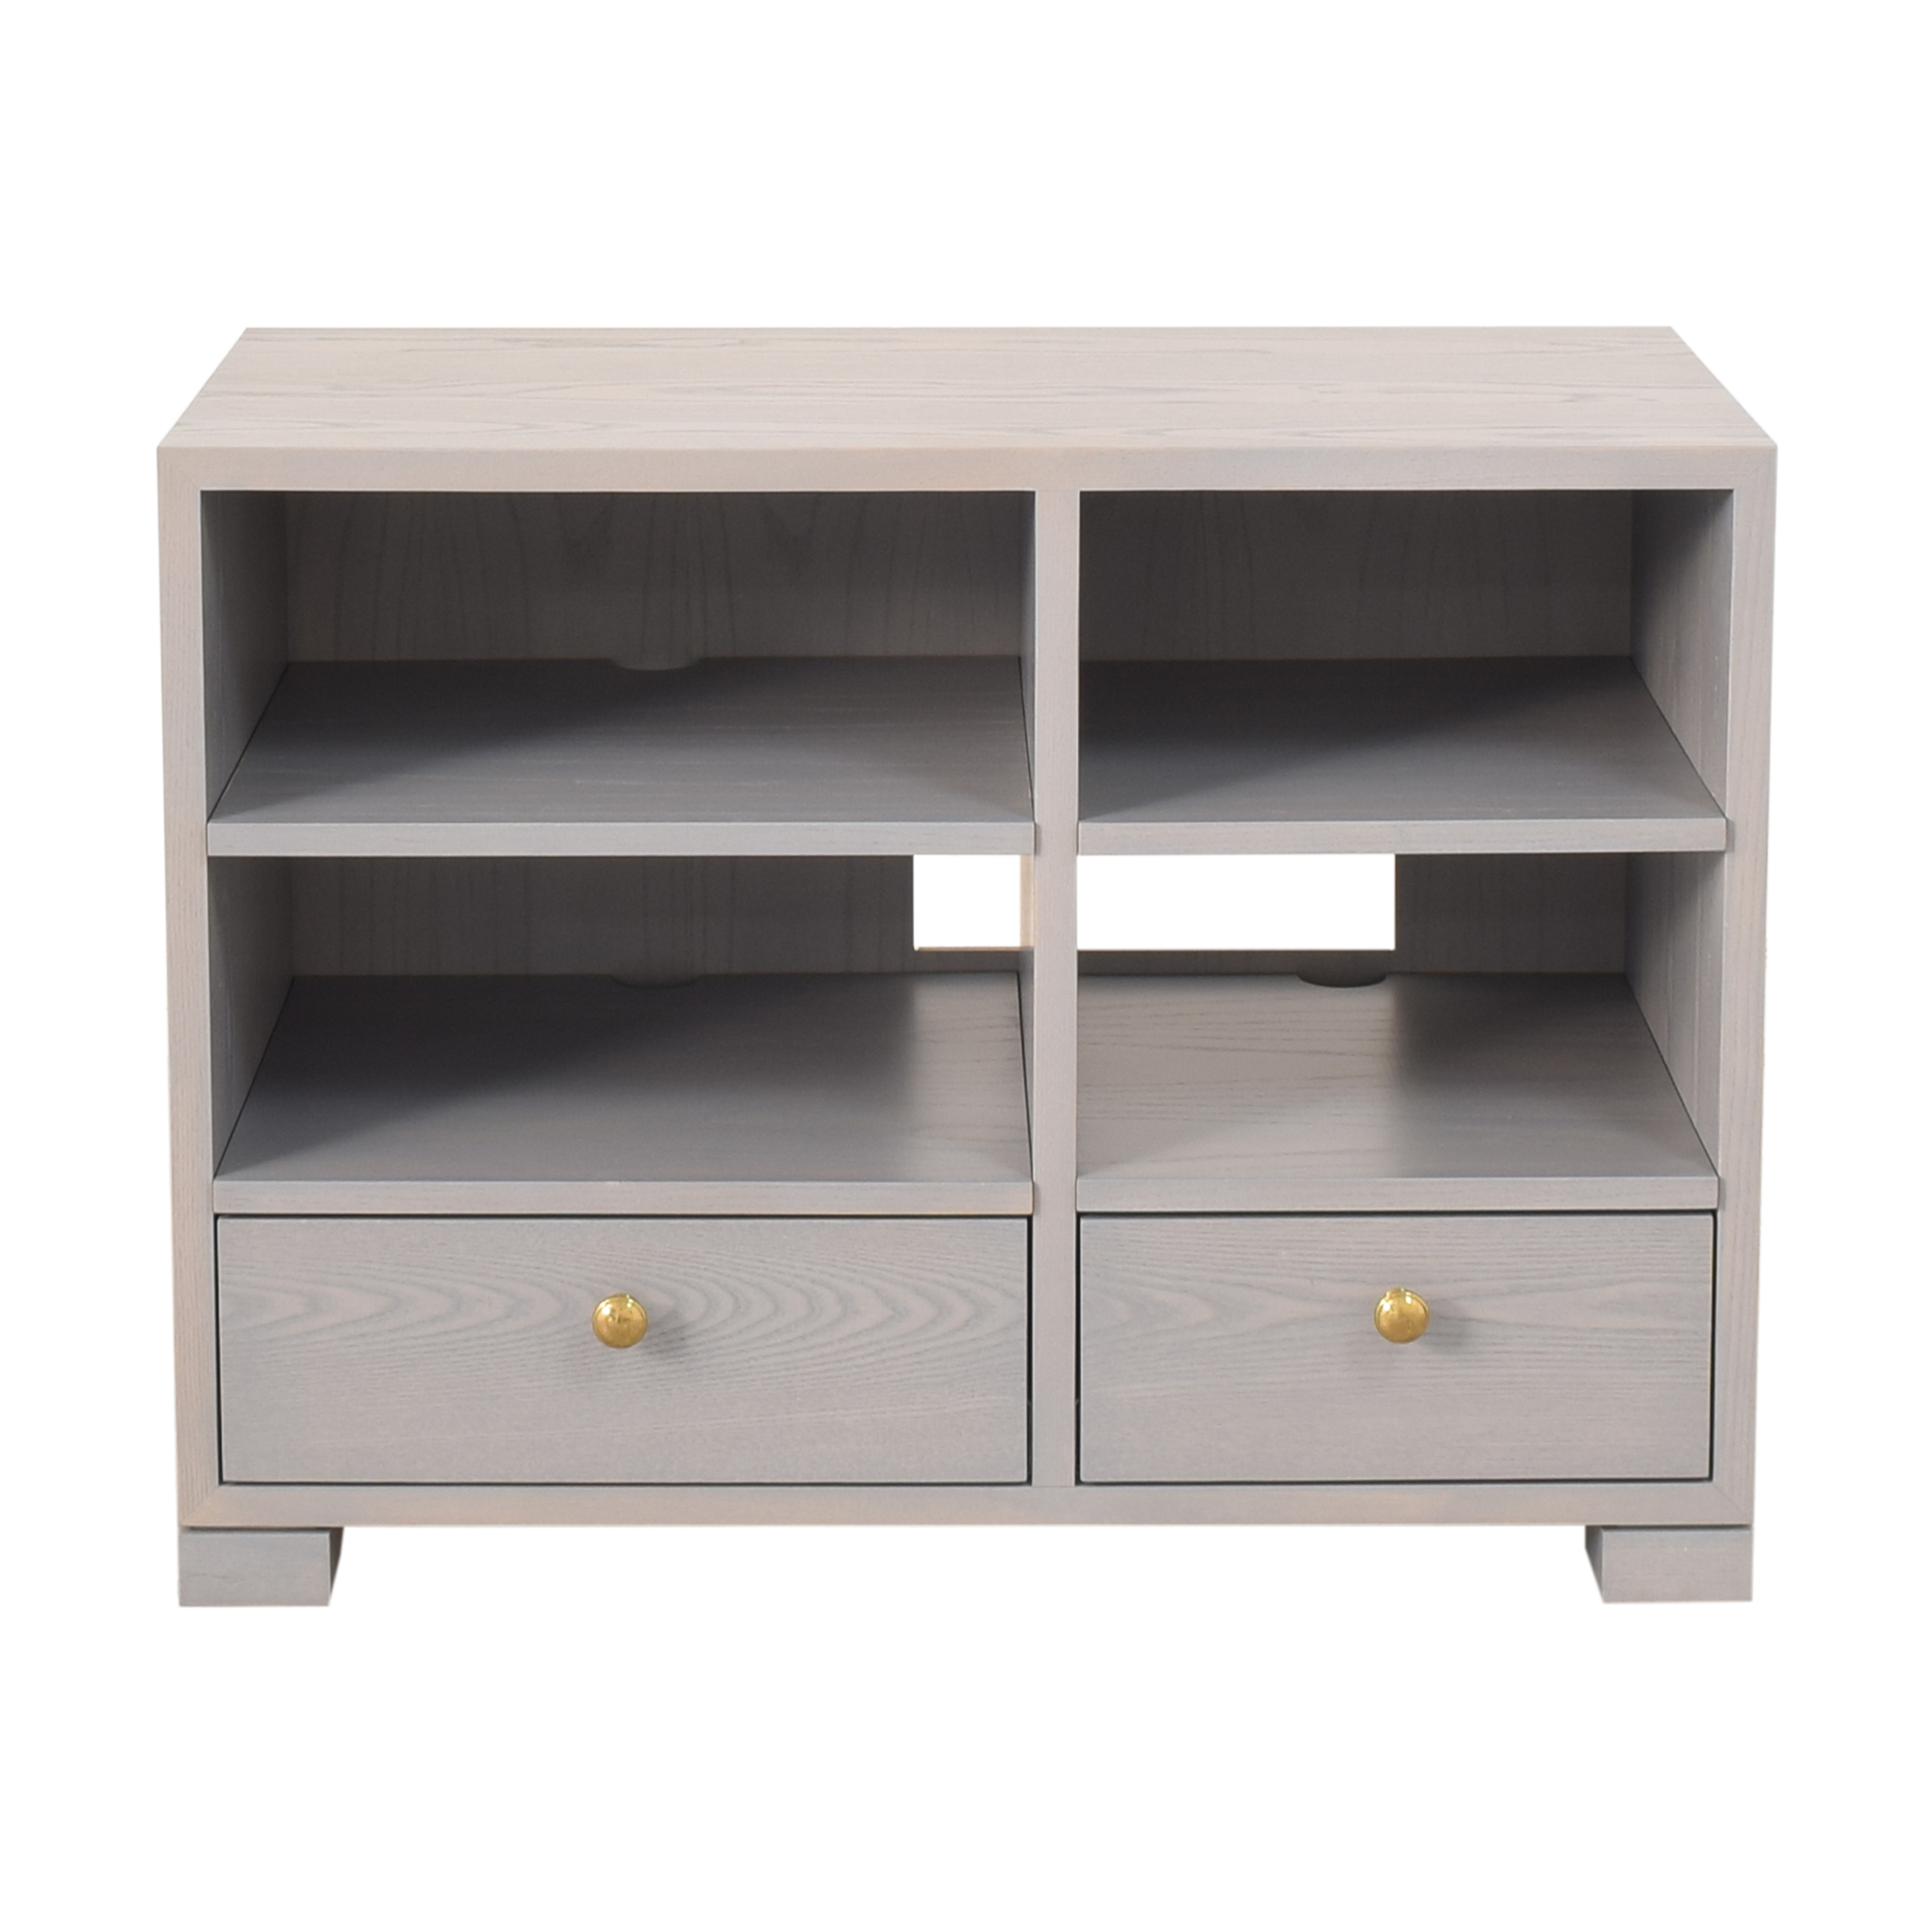 Media Unit on sale